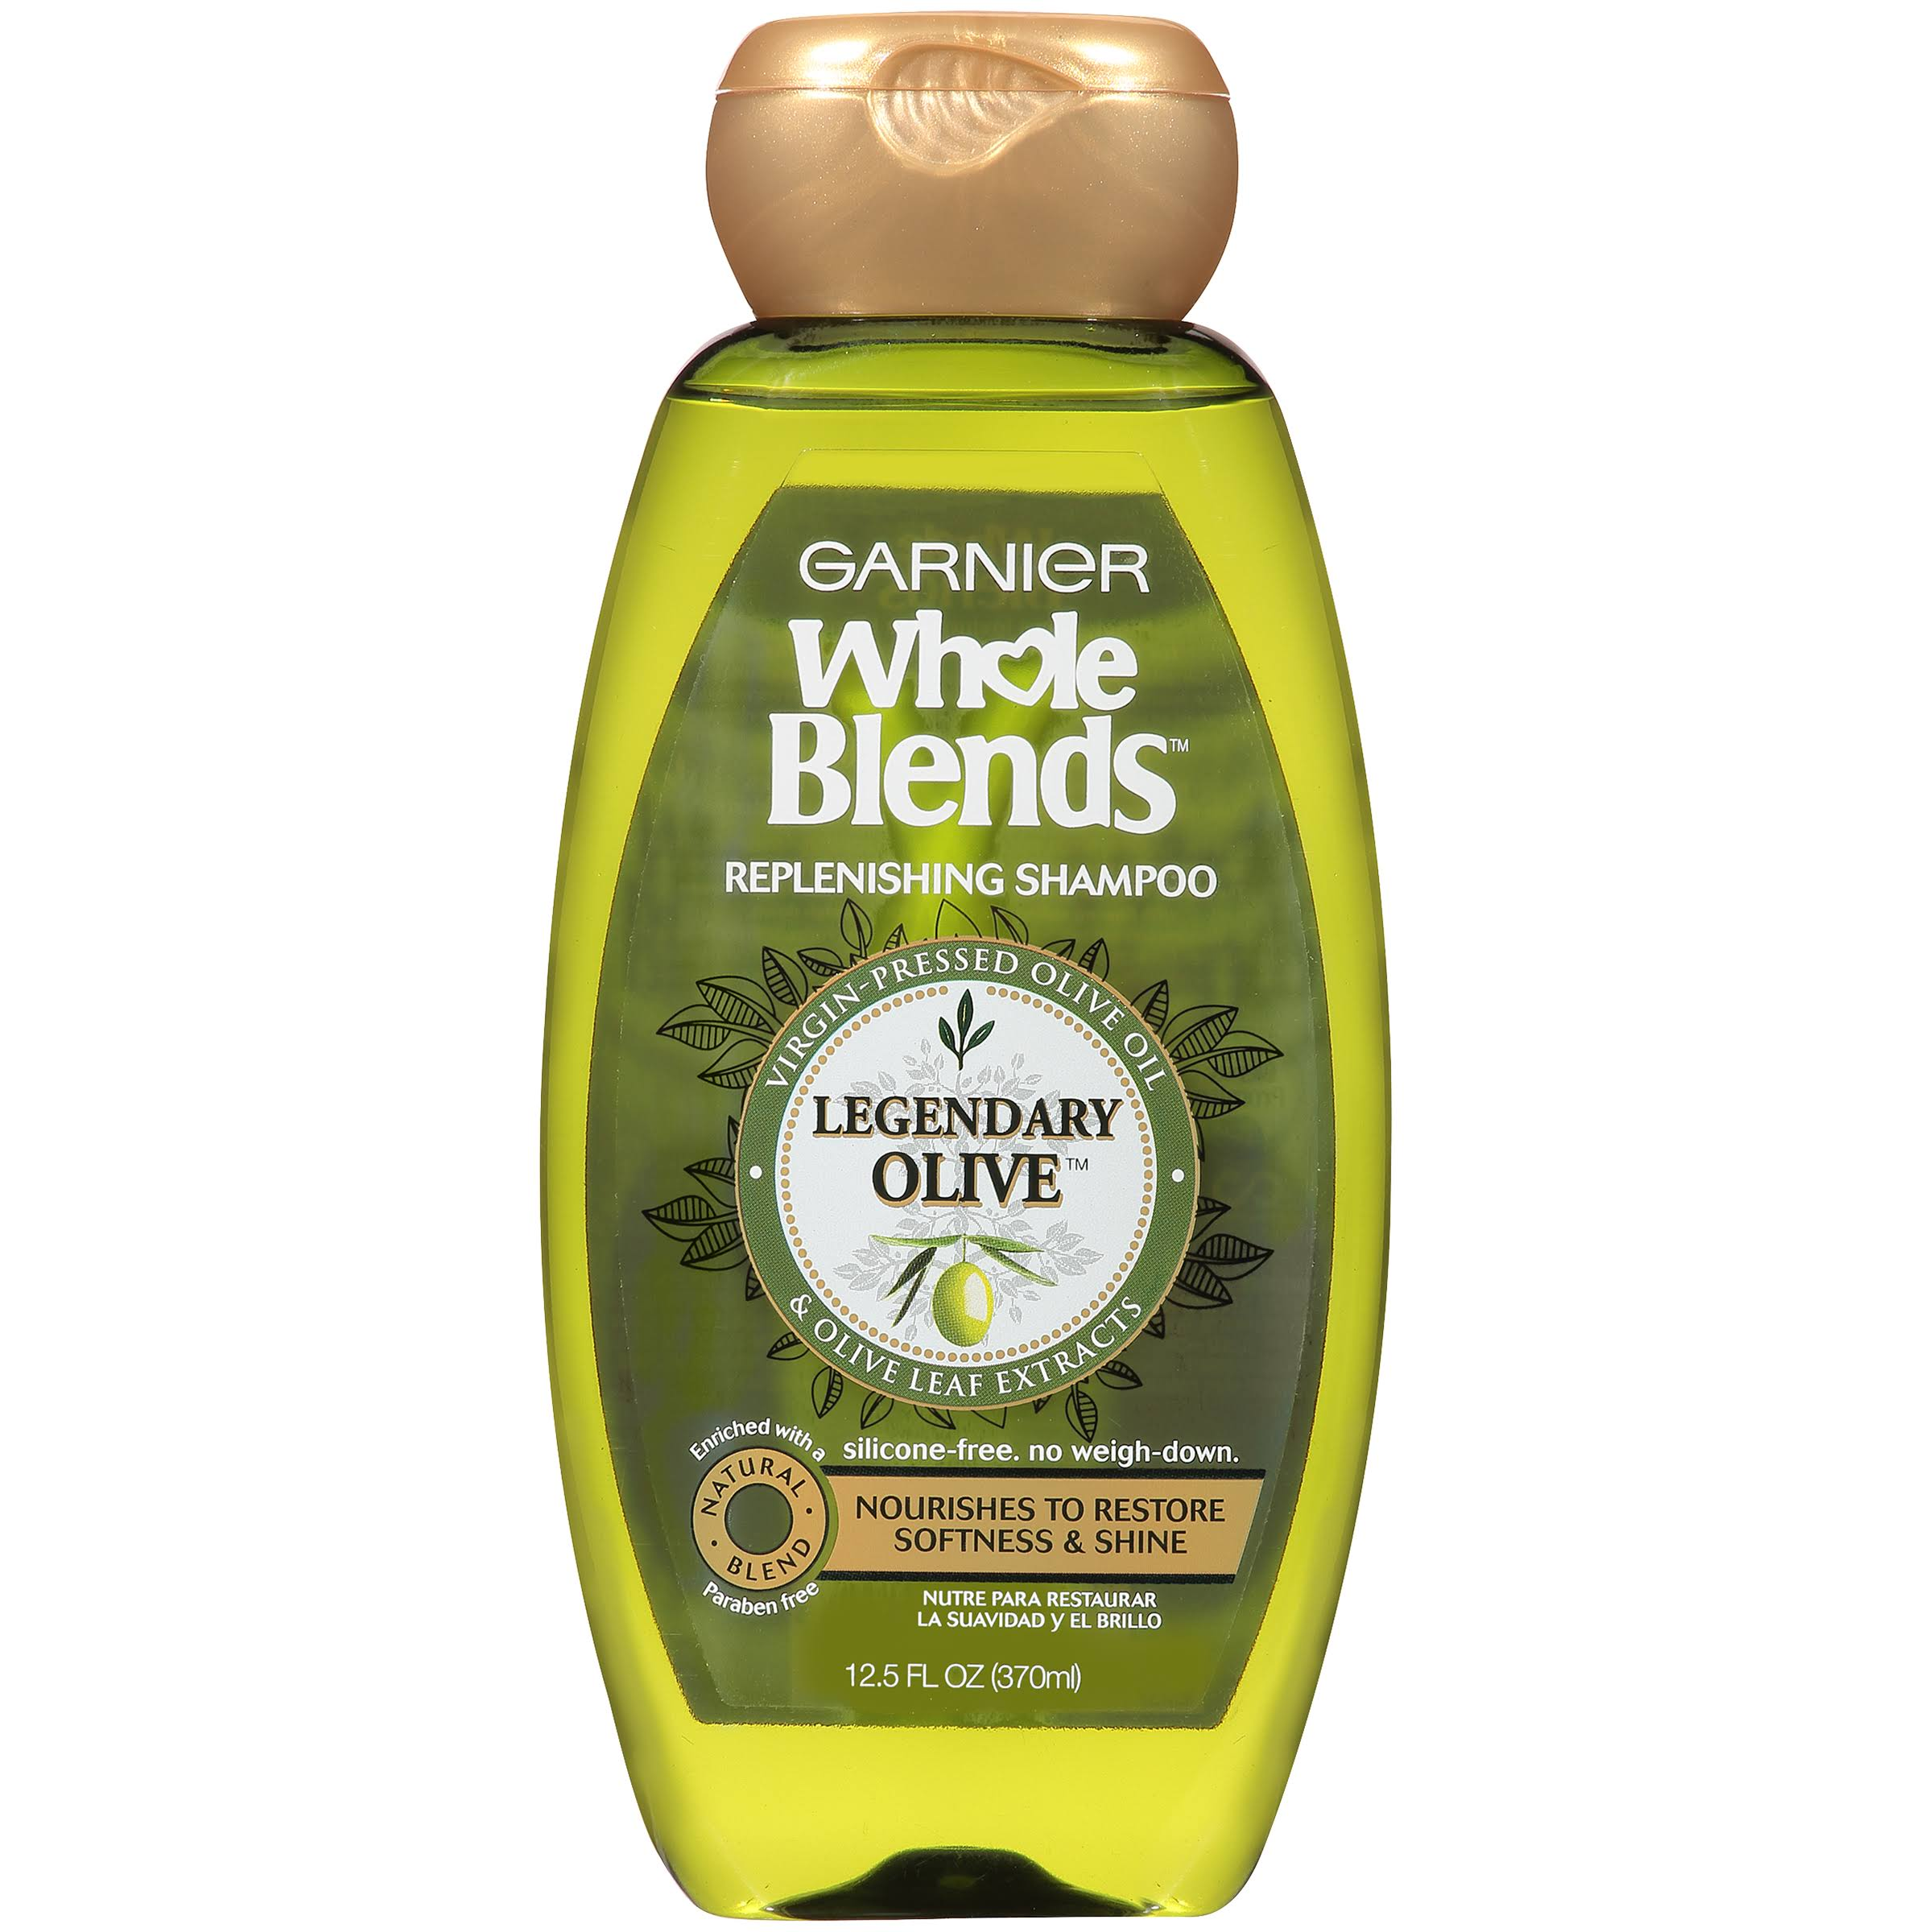 Garnier Whole Blends Replenishing Shampoo - 12.5oz, Legendary Olive